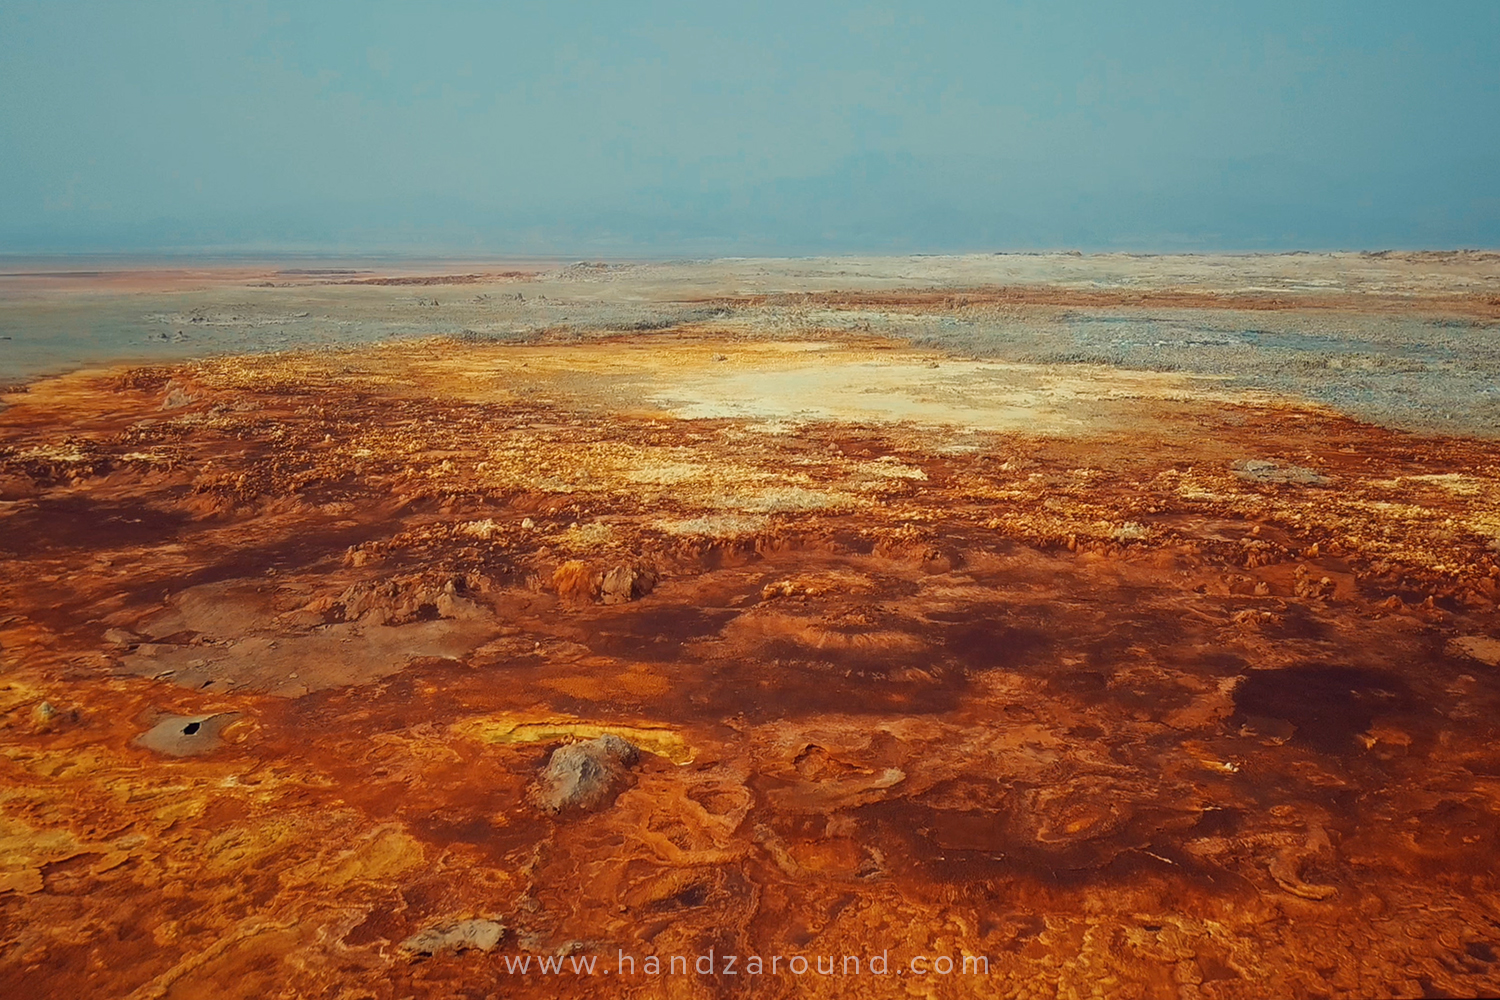 Aerial view of Dallol